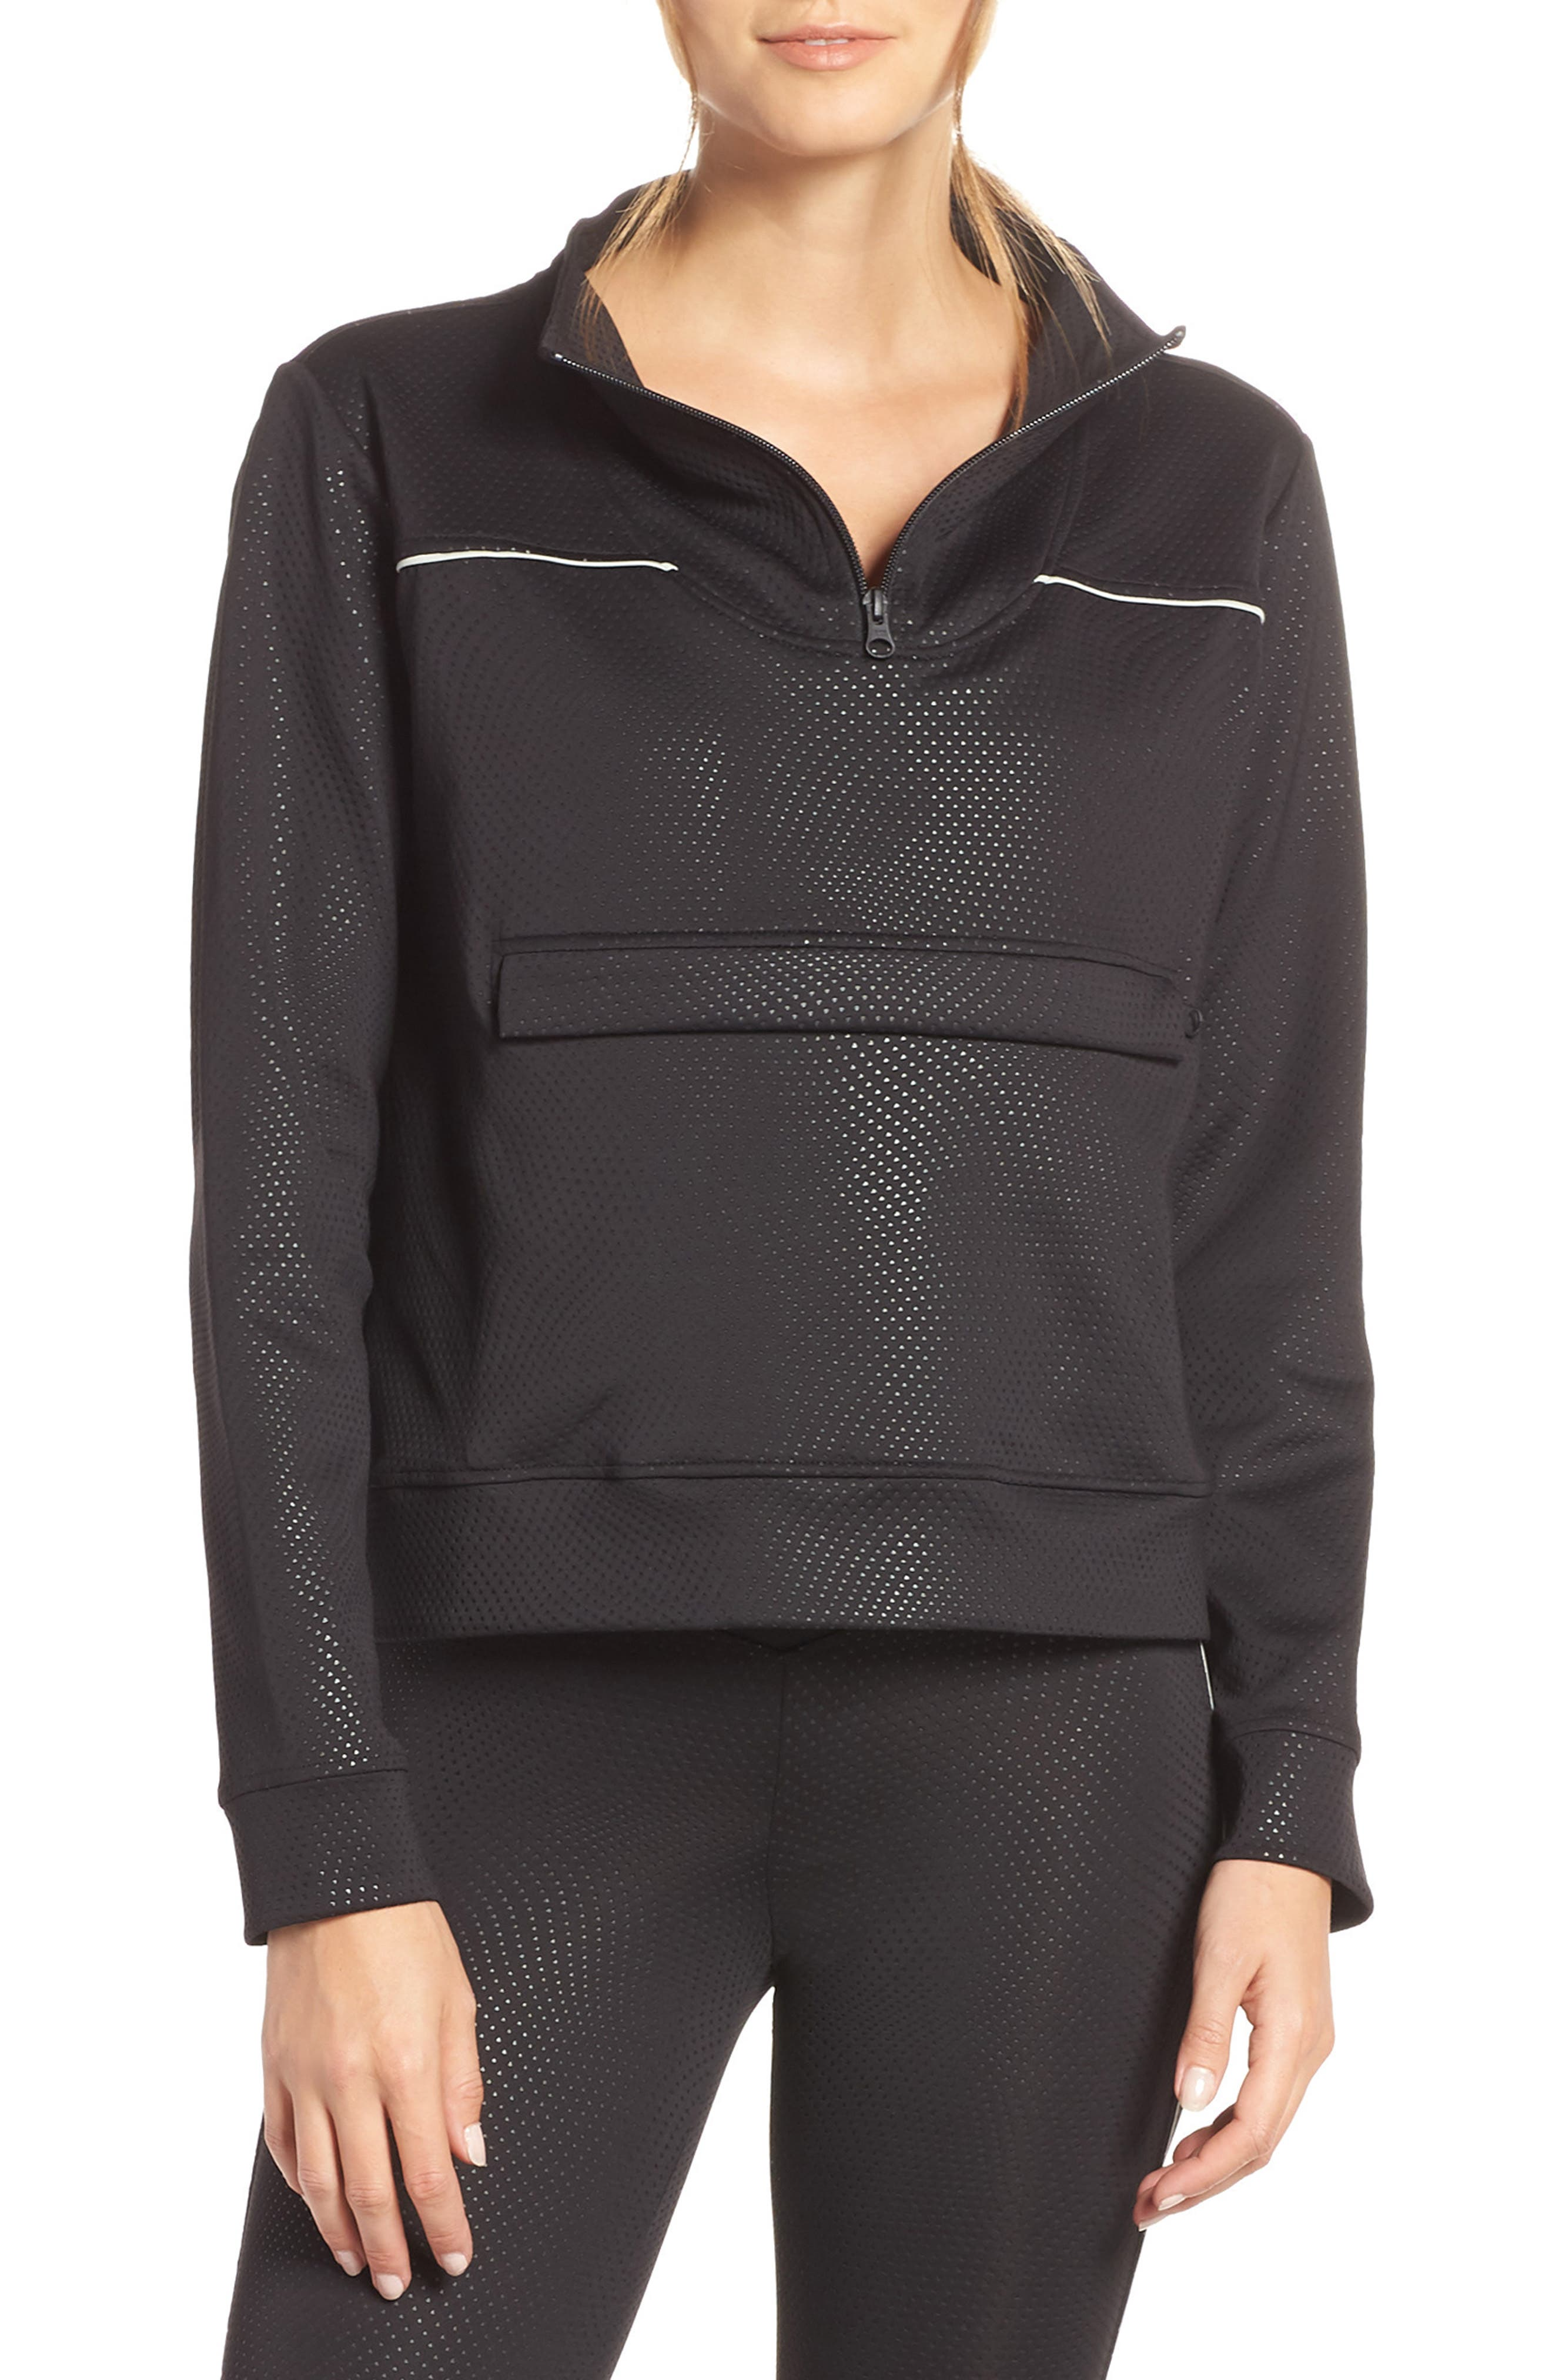 Kai Etch Half-Zip Sweatshirt,                             Main thumbnail 1, color,                             001